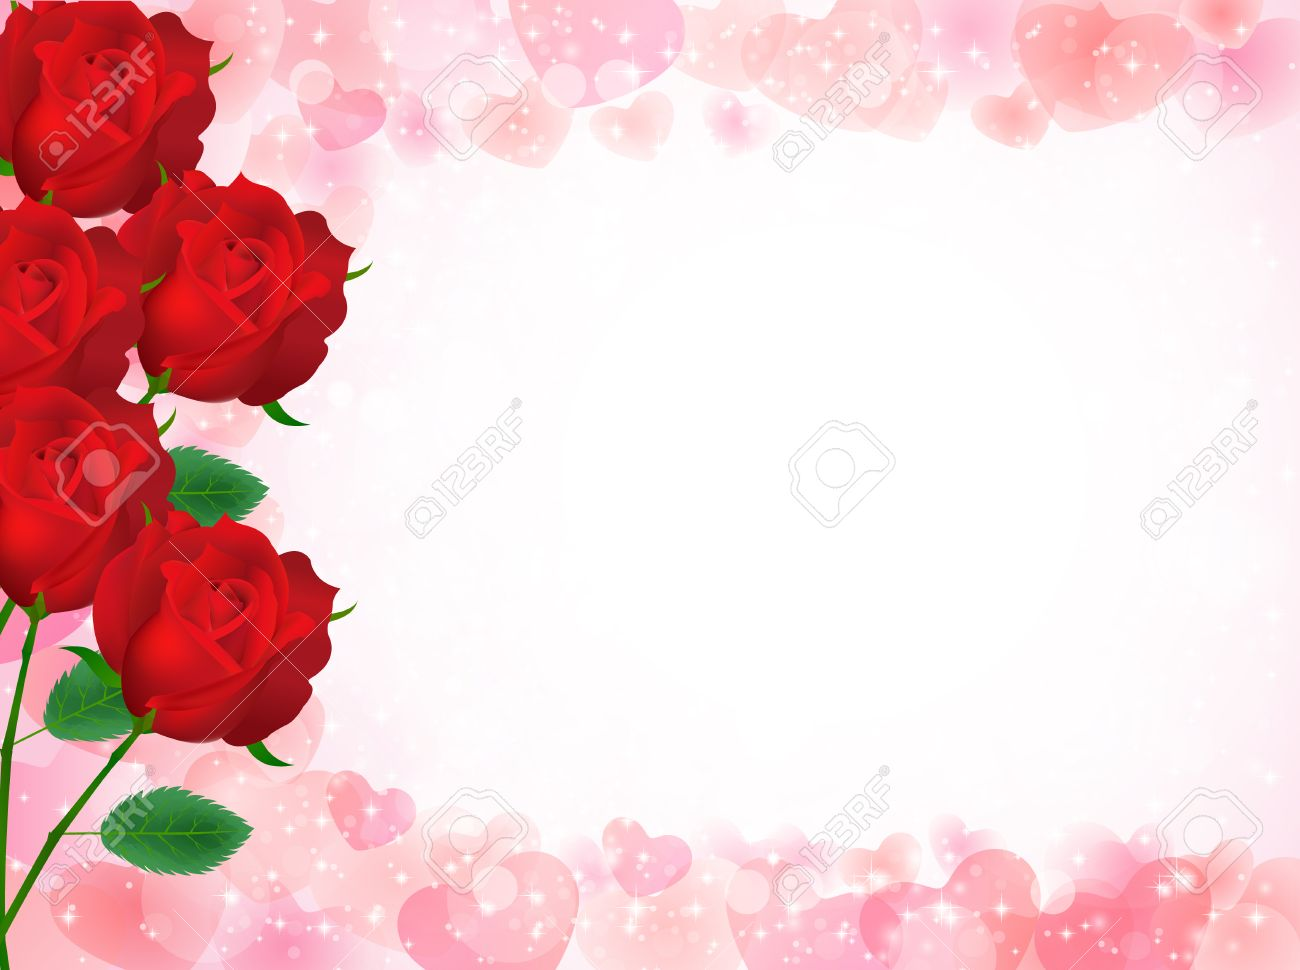 rose flower background royalty free cliparts vectors and stock